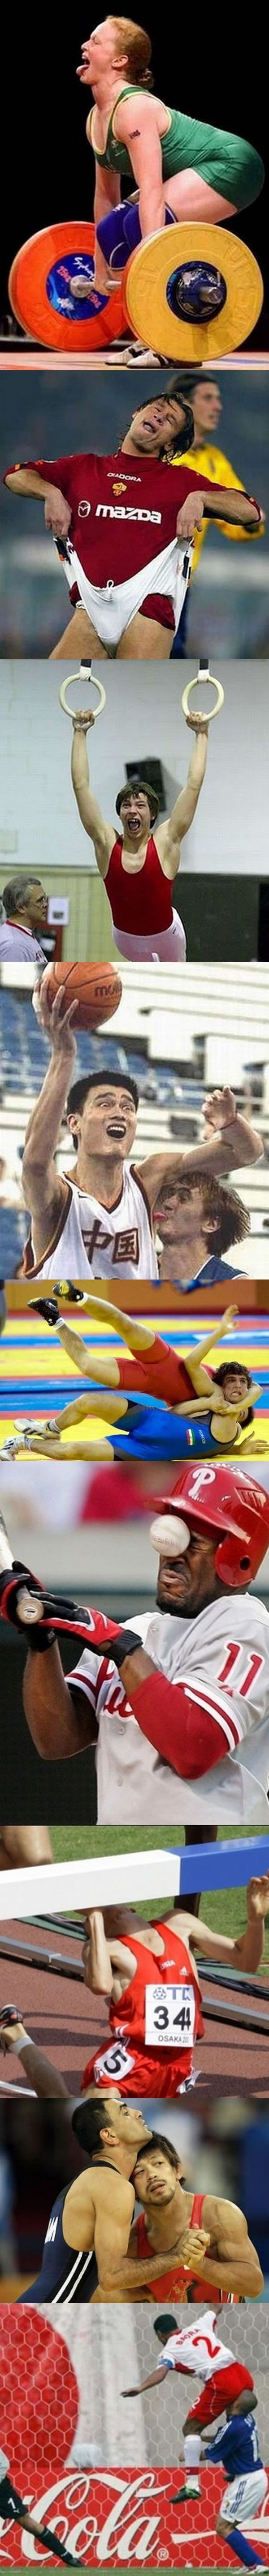 Crazy sports pictures